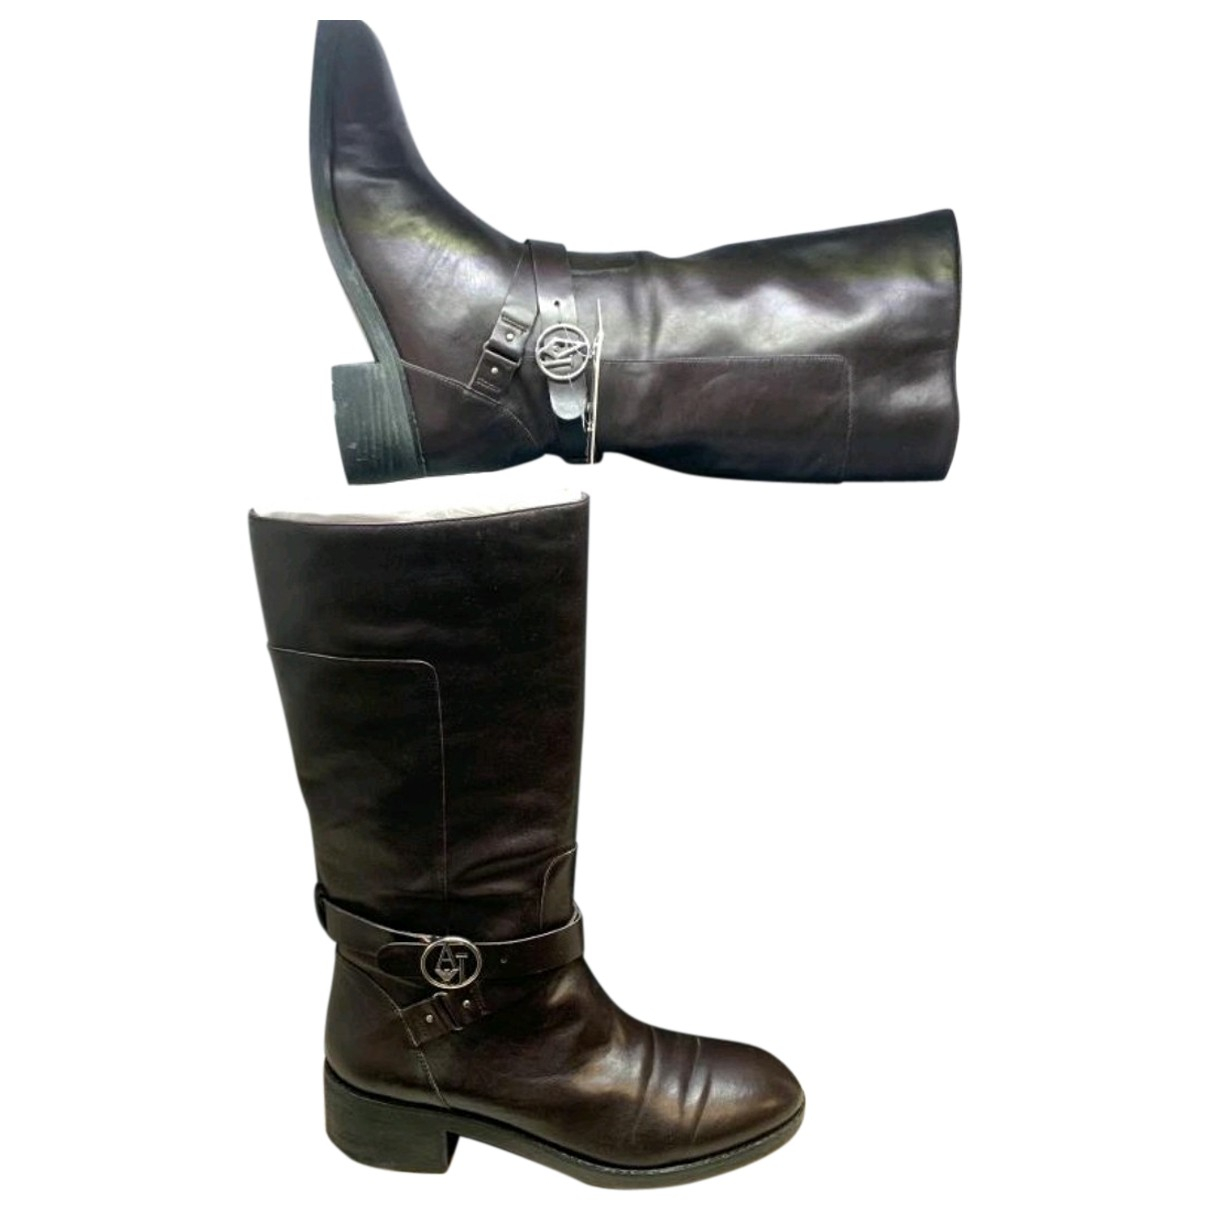 Armani Jeans N Brown Leather Boots for Women 40 EU